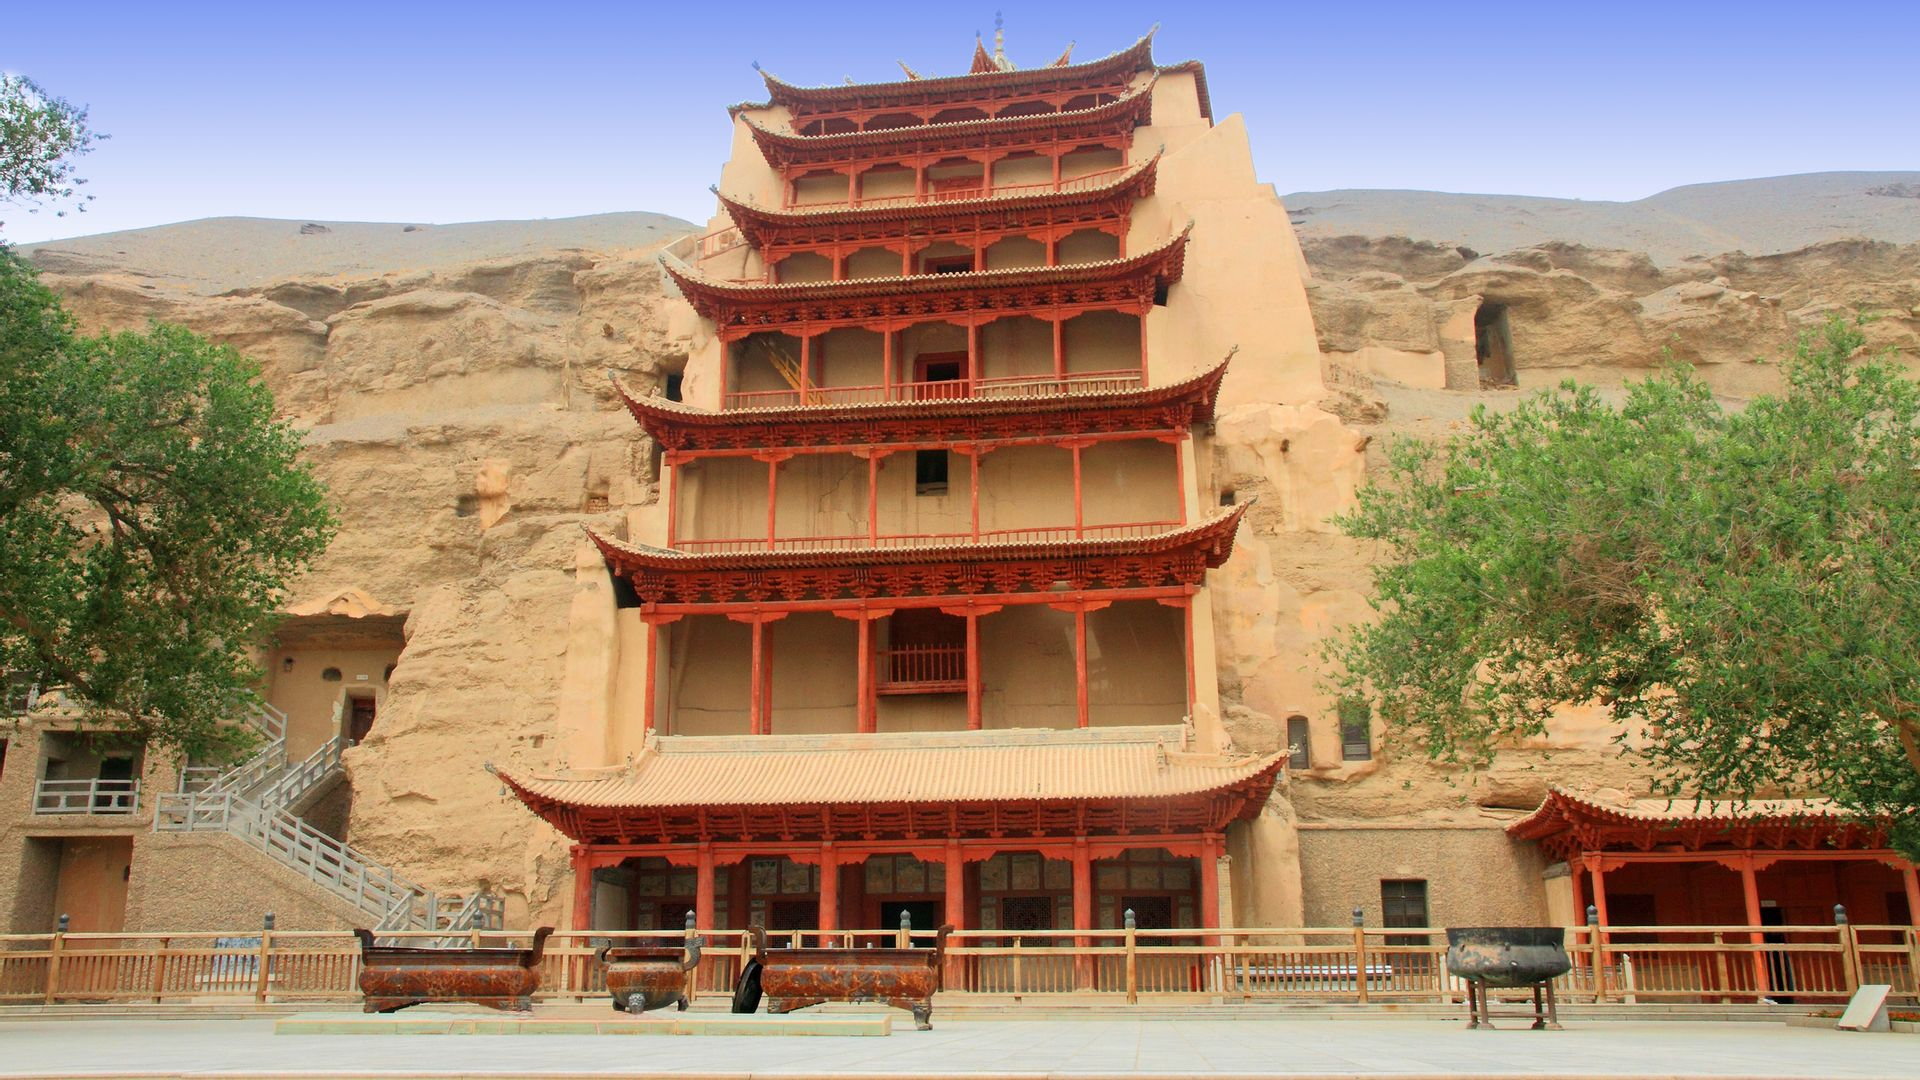 Grottes de Mogao, Dunhuang - Chine ©iStock